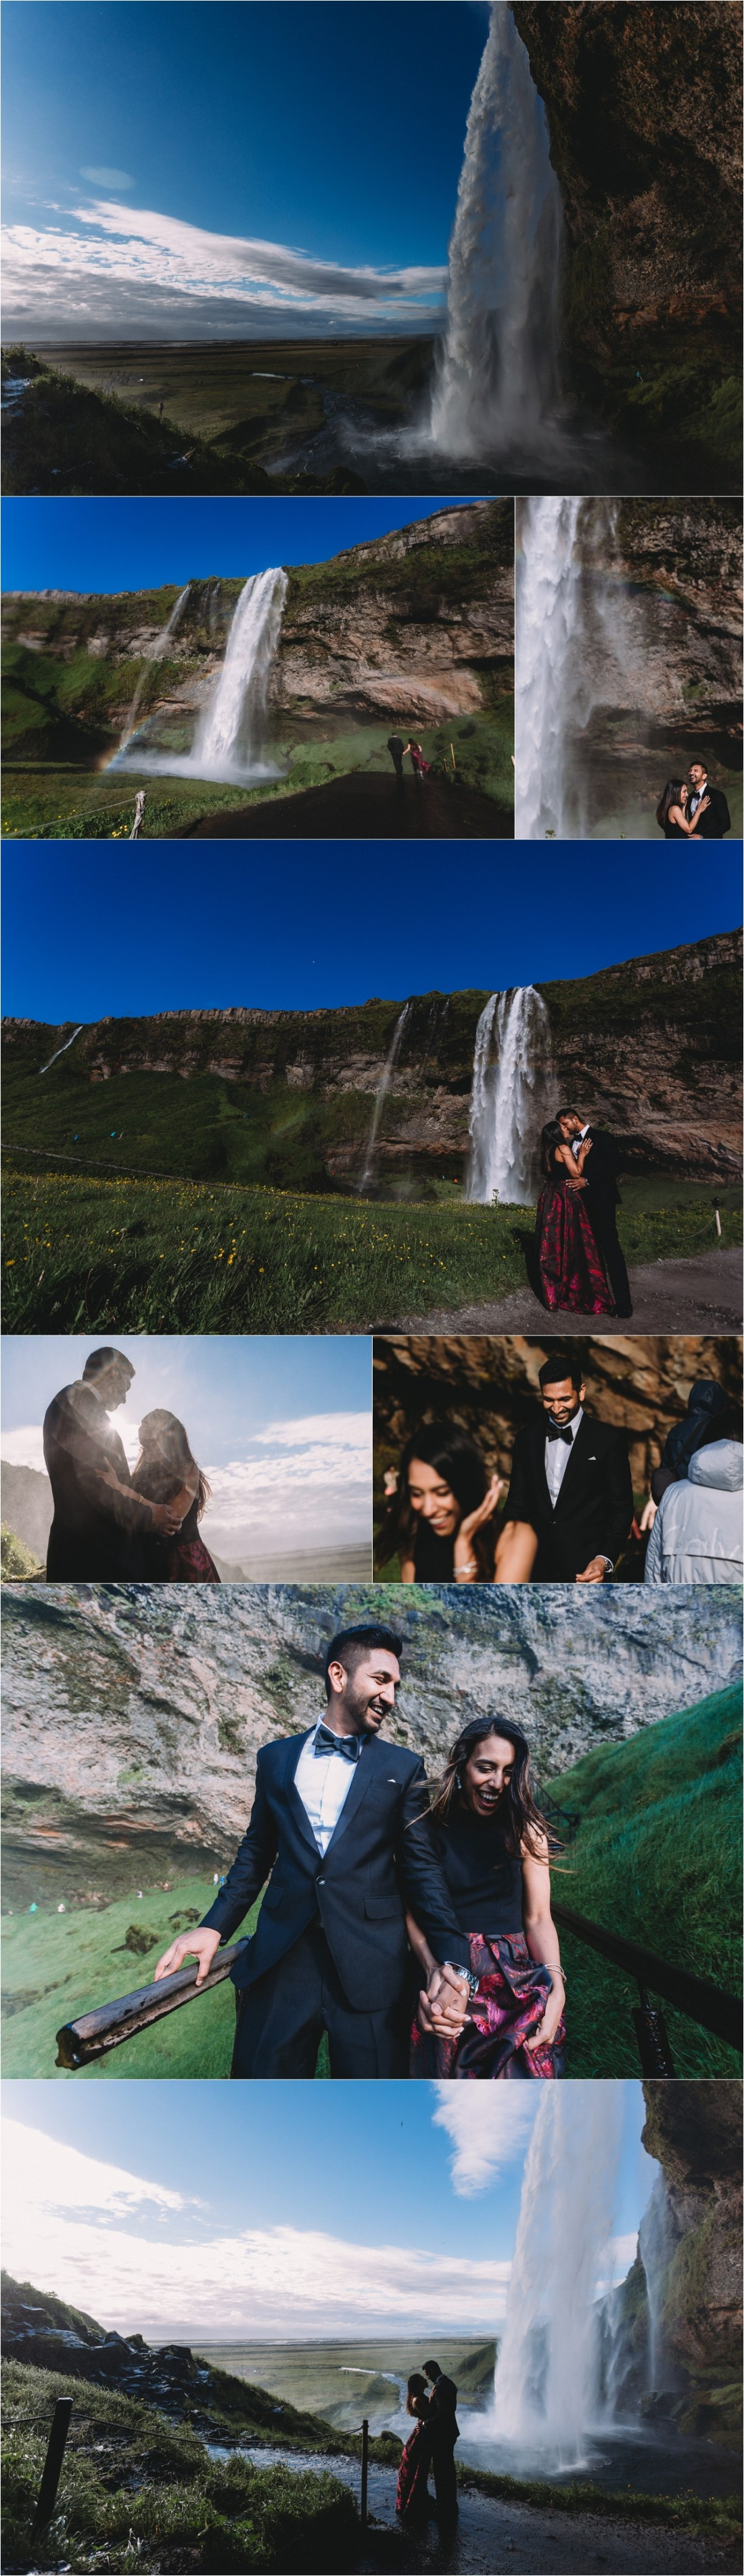 Secret proposal couple shoot at Seljalandsfoss in Iceland by Zakas Photography